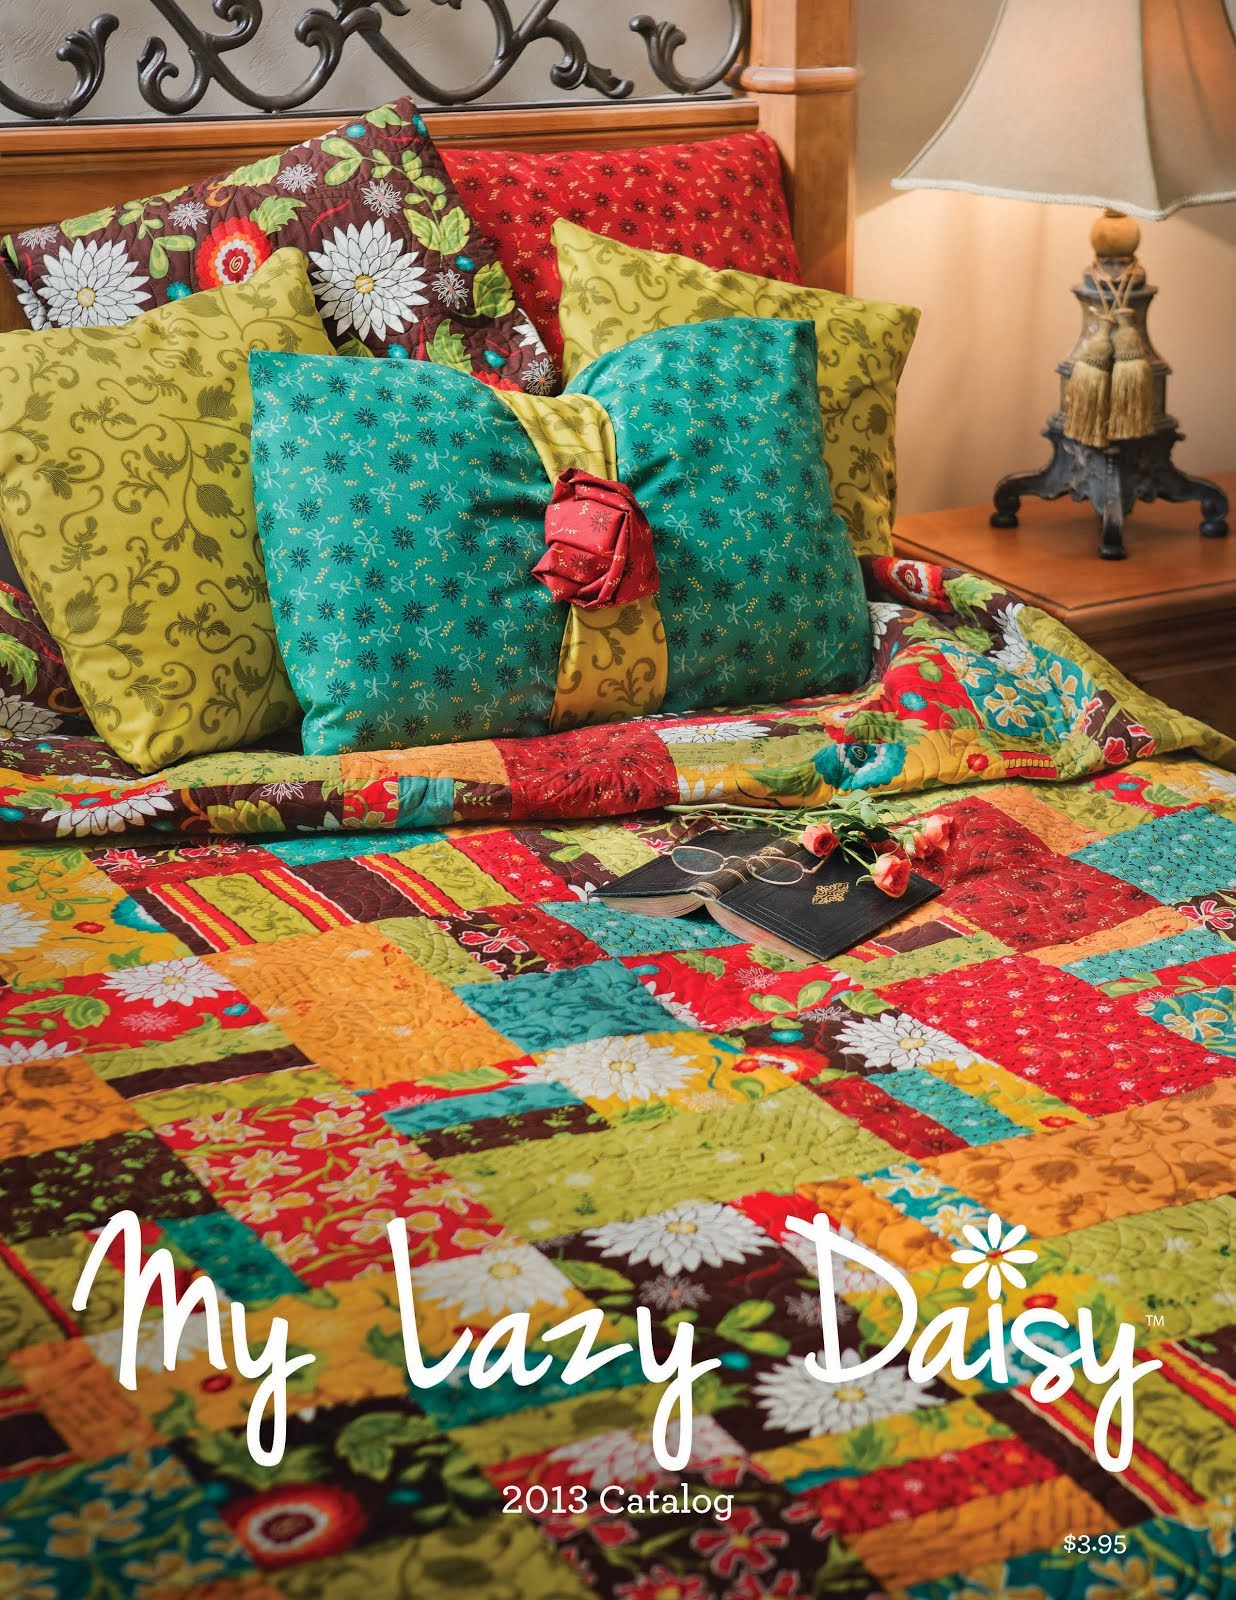 The 2013 My Lazy Daisy Catalog